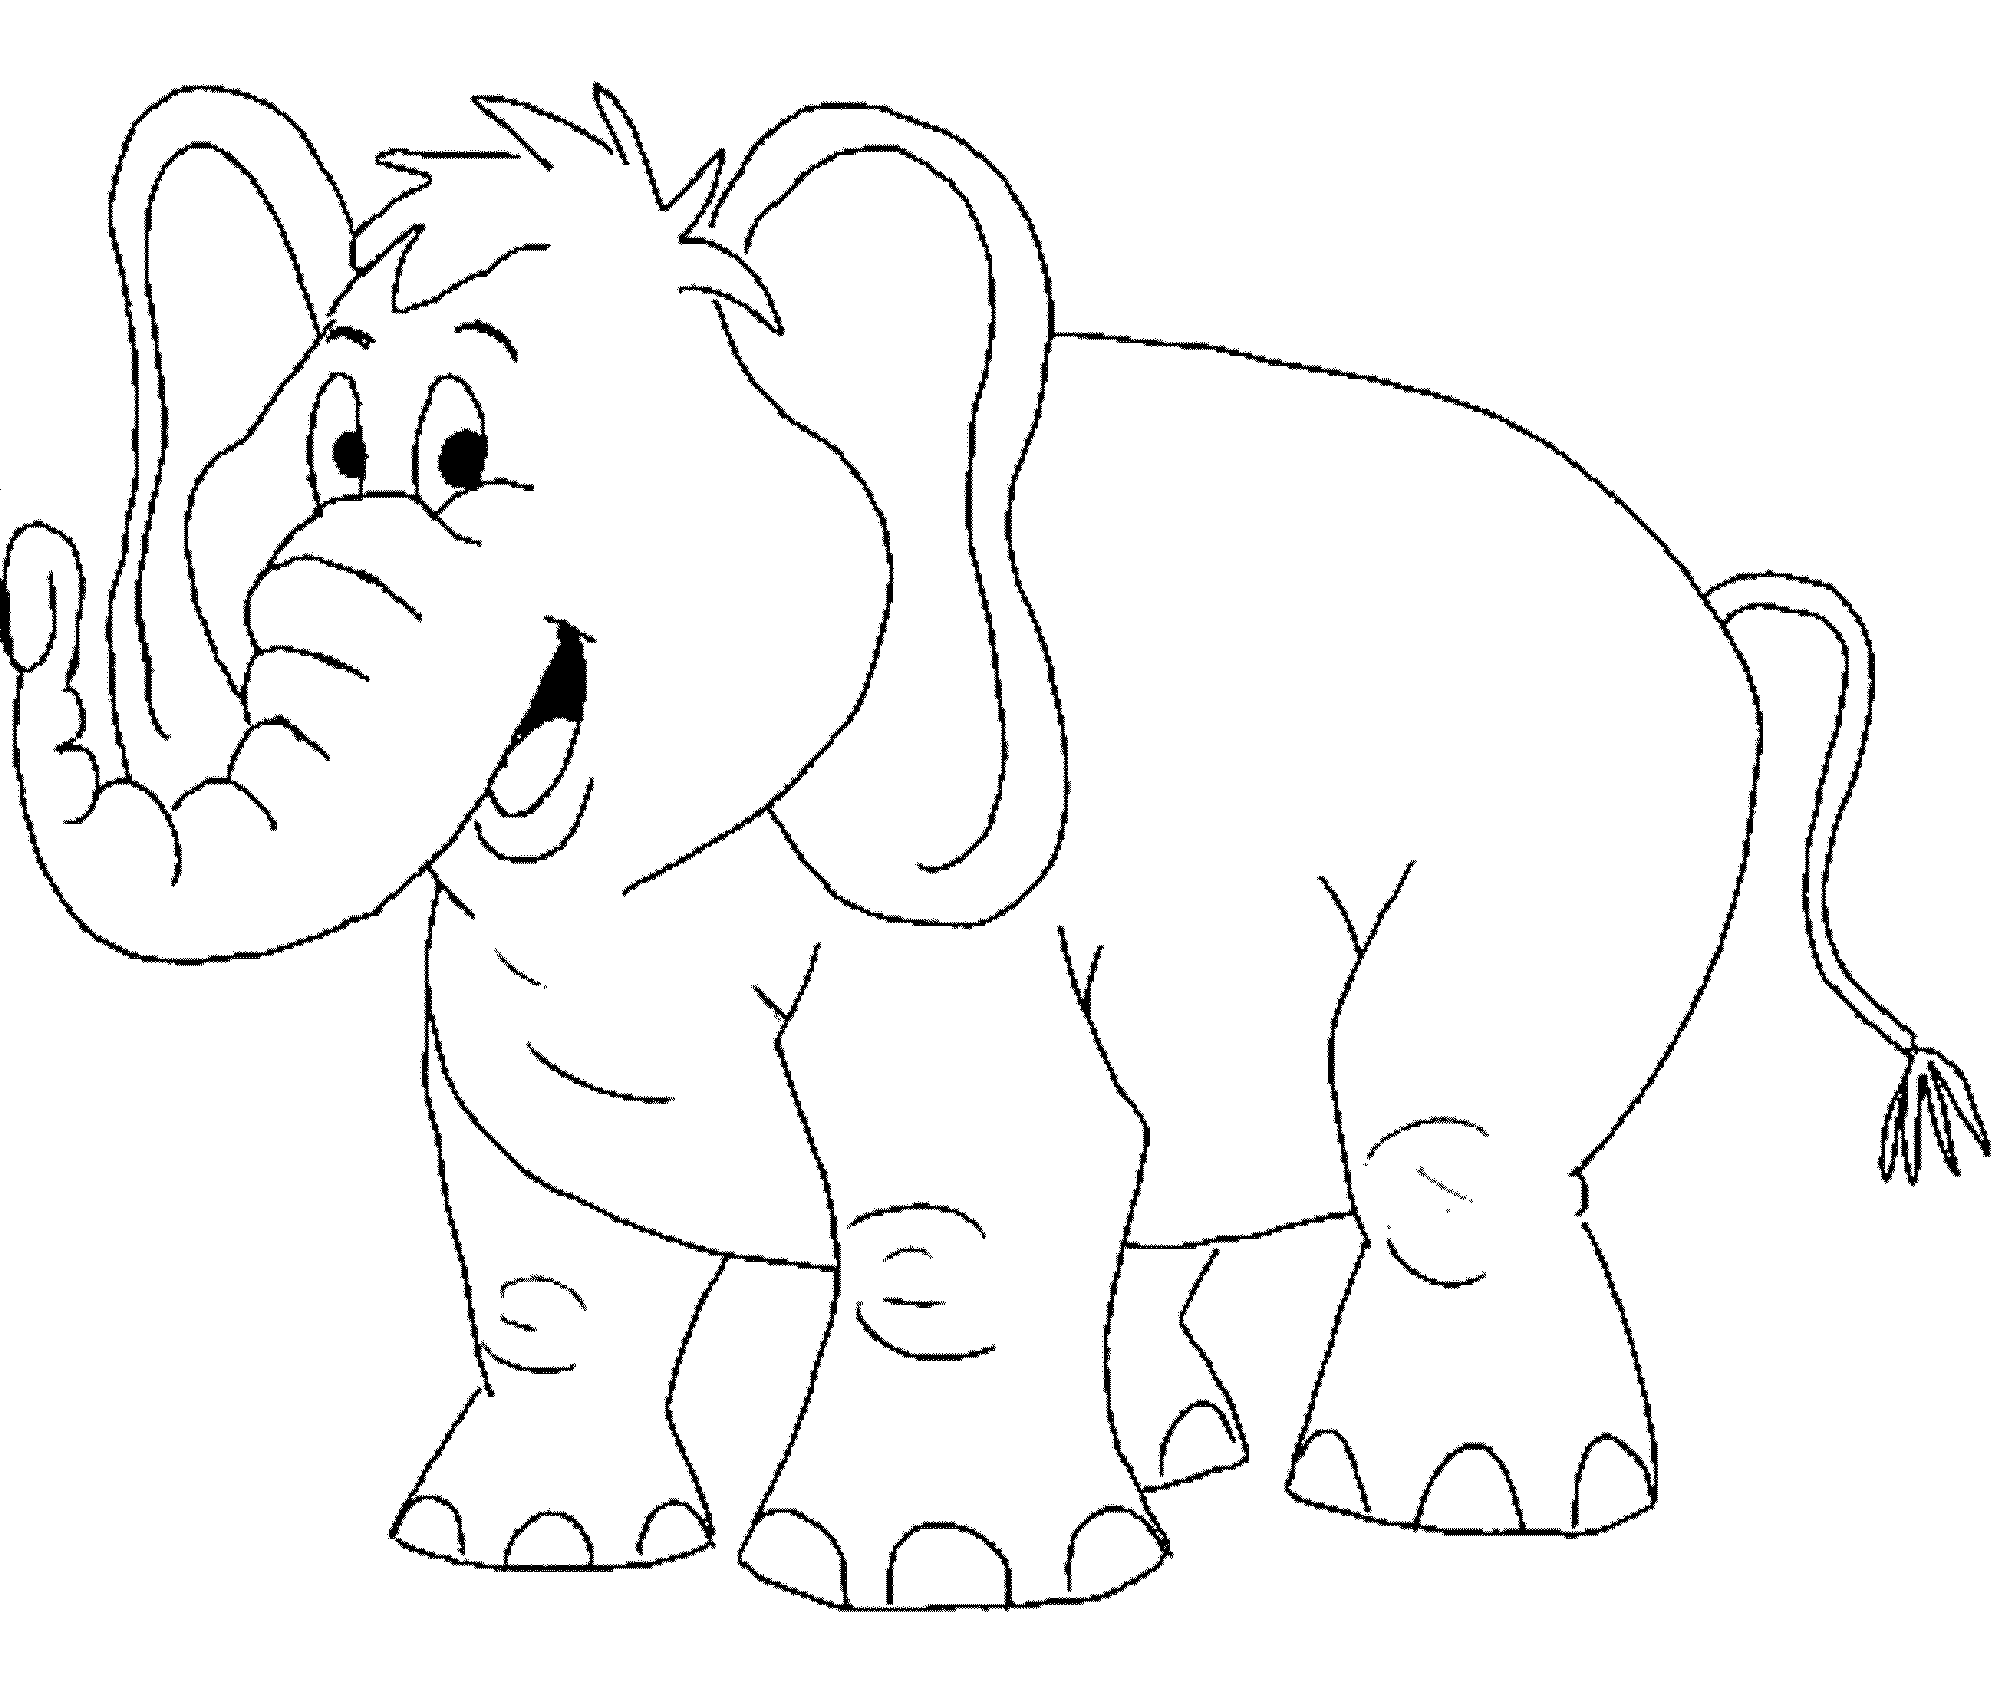 elephants coloring pages elephant coloring book pages get coloring pages pages elephants coloring